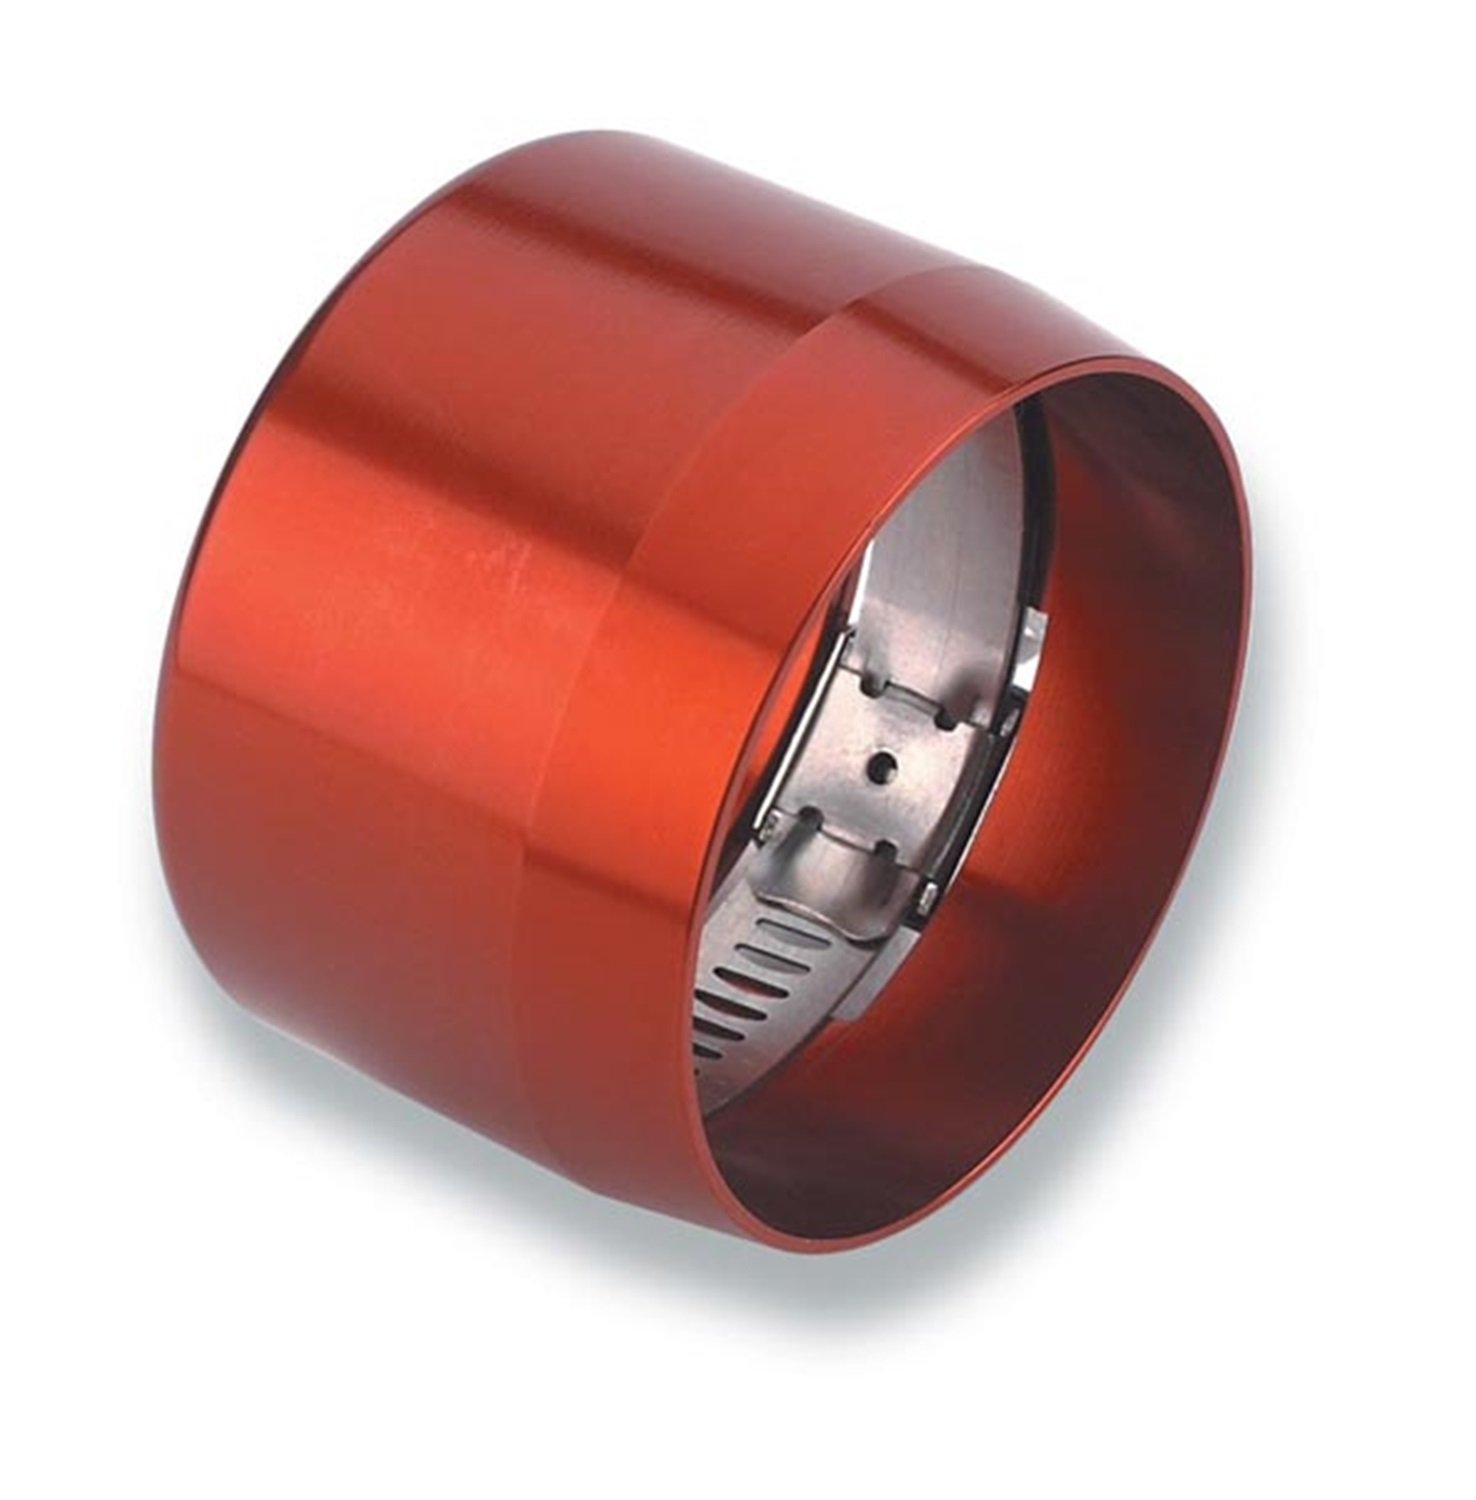 Earl's 900106 Econ-O-Fit Red Anodized Aluminum #6 Hose Clamp